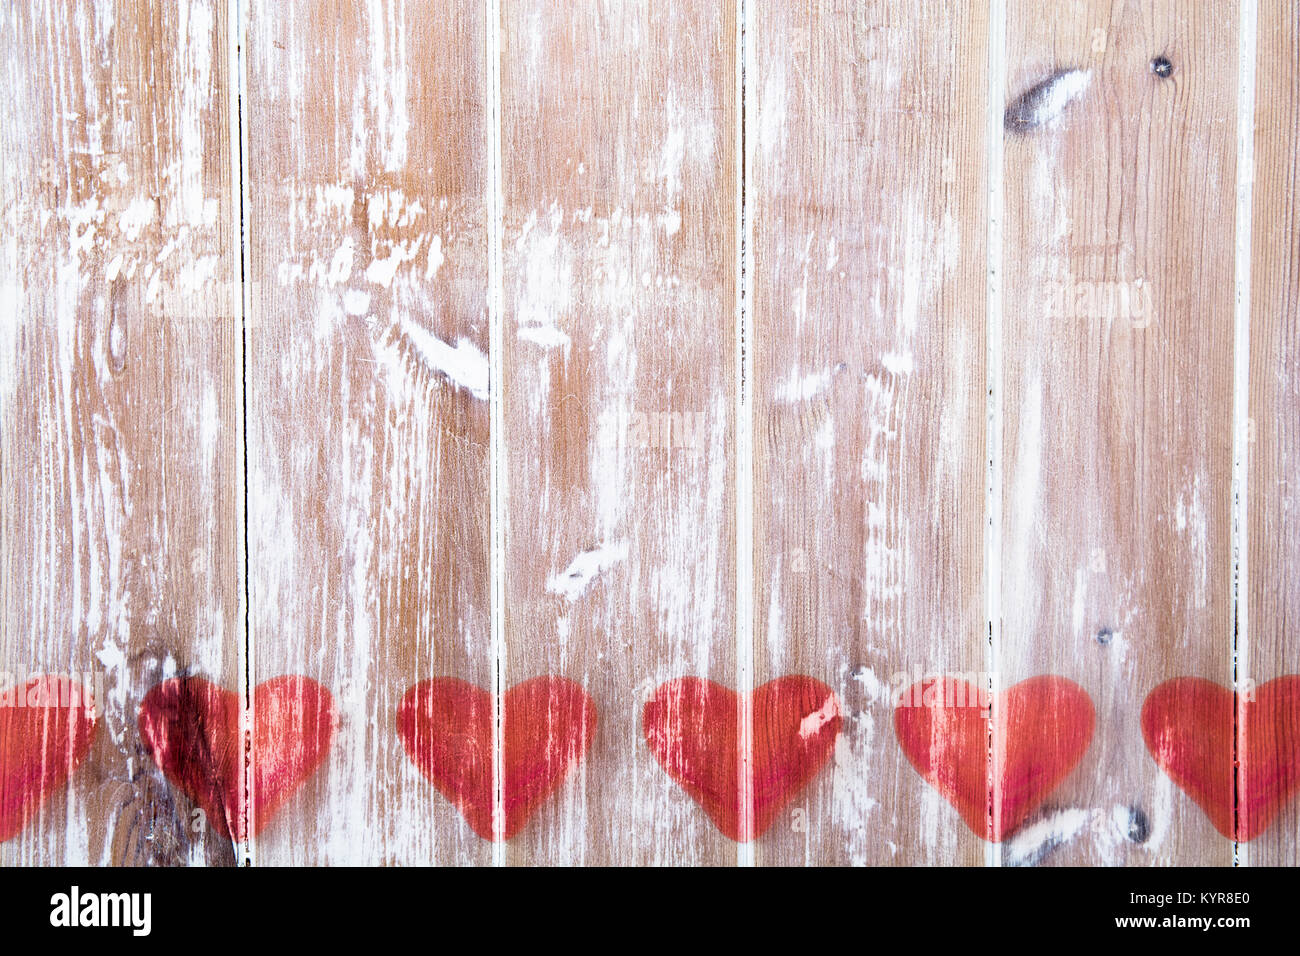 Valentines Day Love Heart On Rustic Wood Background Image Template For Or Themed Cards And Greetings